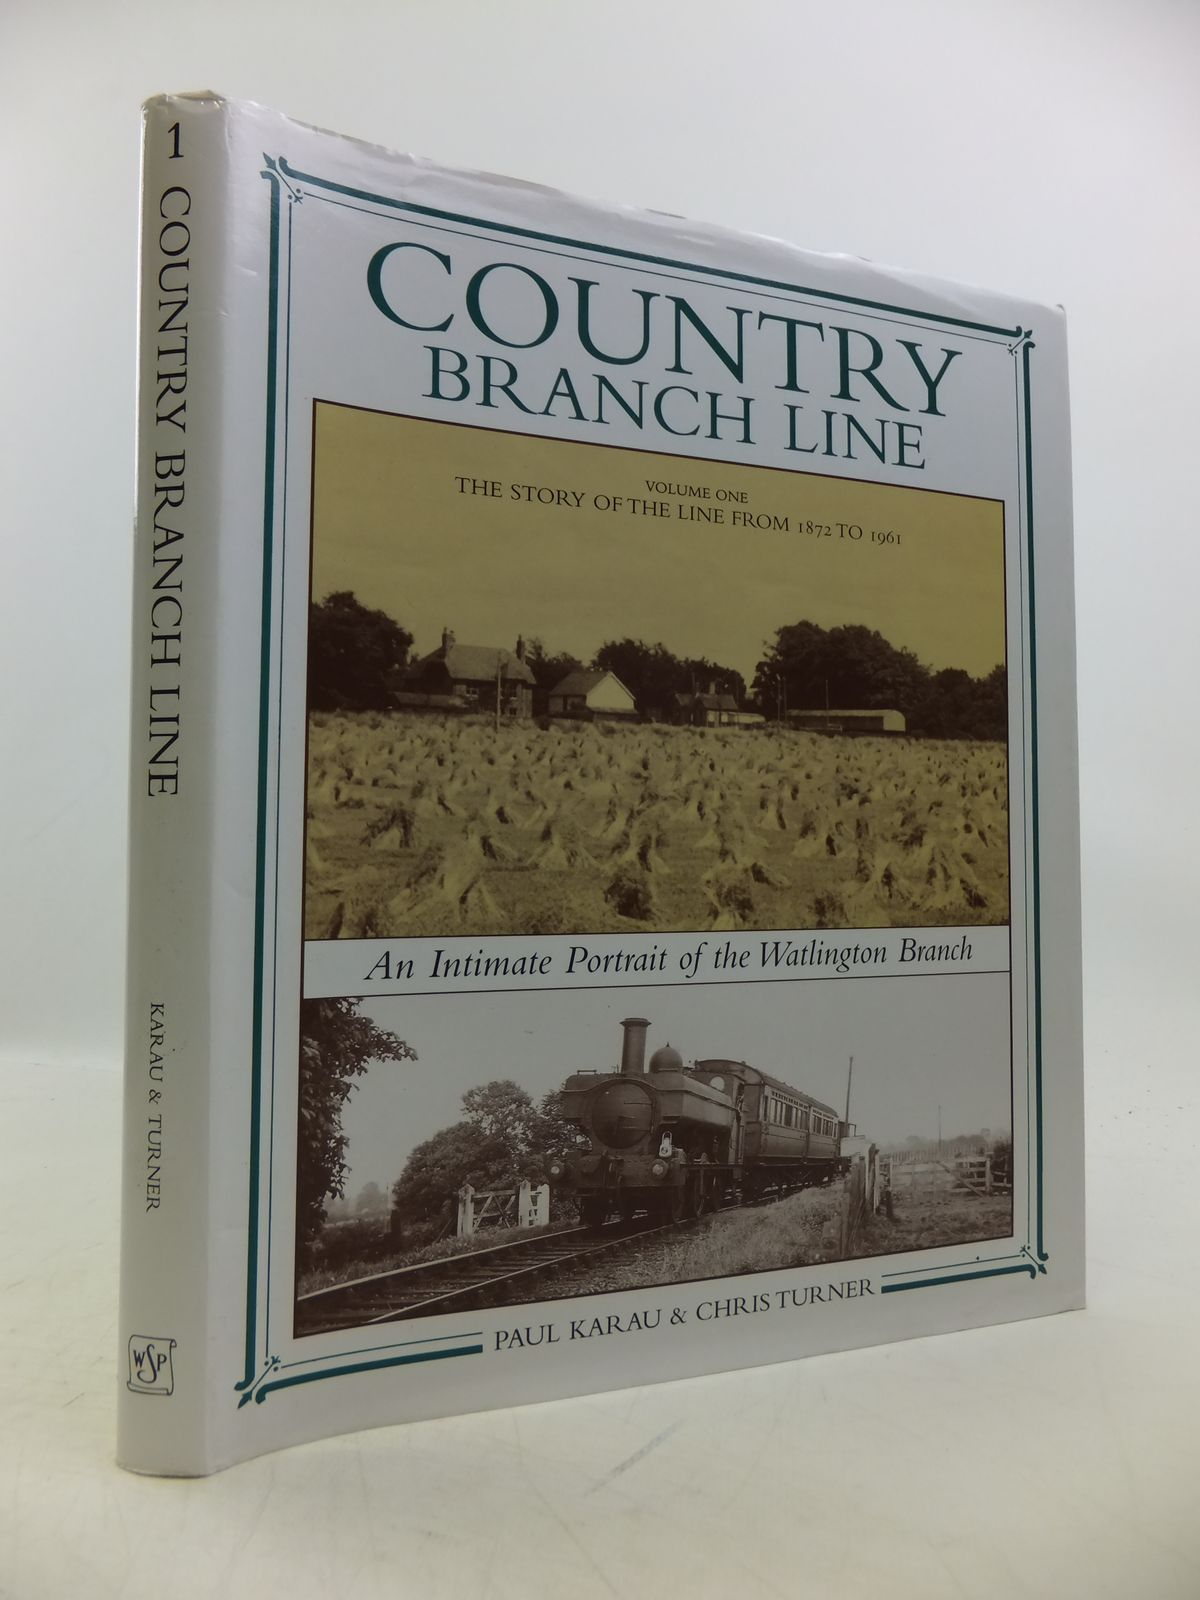 Photo of COUNTRY BRANCH LINE AN INTIMATE PORTRAIT OF THE WATLINGTON BRANCH VOLUME ONE written by Karau, Paul Turner, Chris published by Wild Swan Publications (STOCK CODE: 1811810)  for sale by Stella & Rose's Books